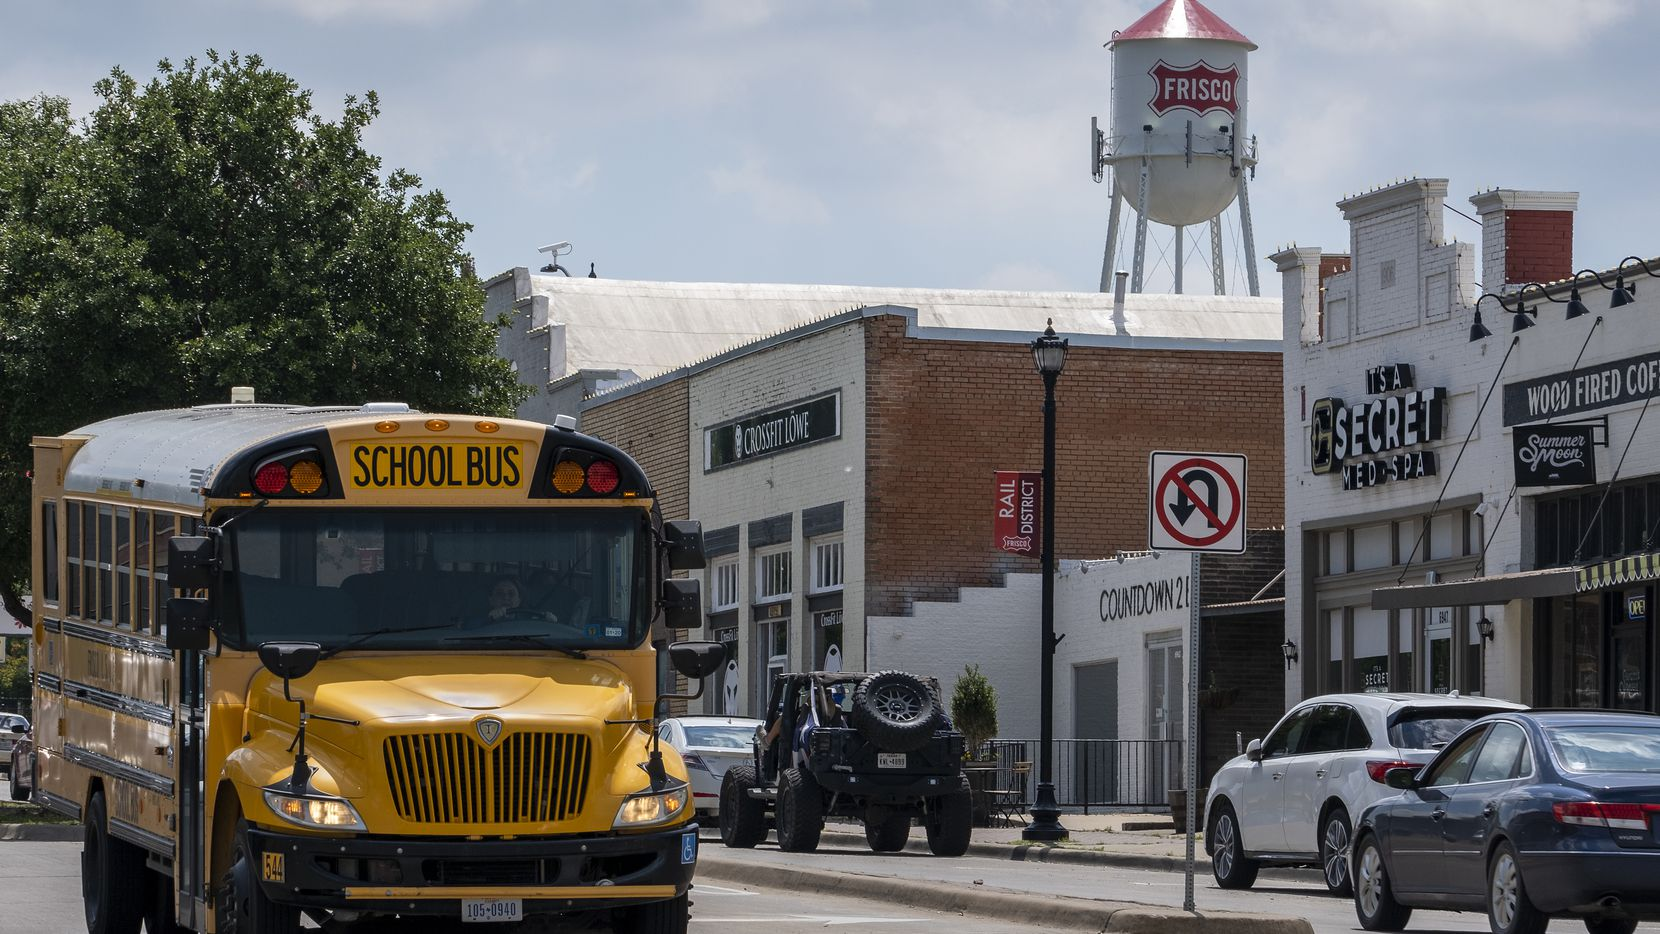 A Frisco ISD school bus passes along Main Street under the city's old iconic water tower. The school district has grown rapidly, along with everything else in this North Texas boomtown.